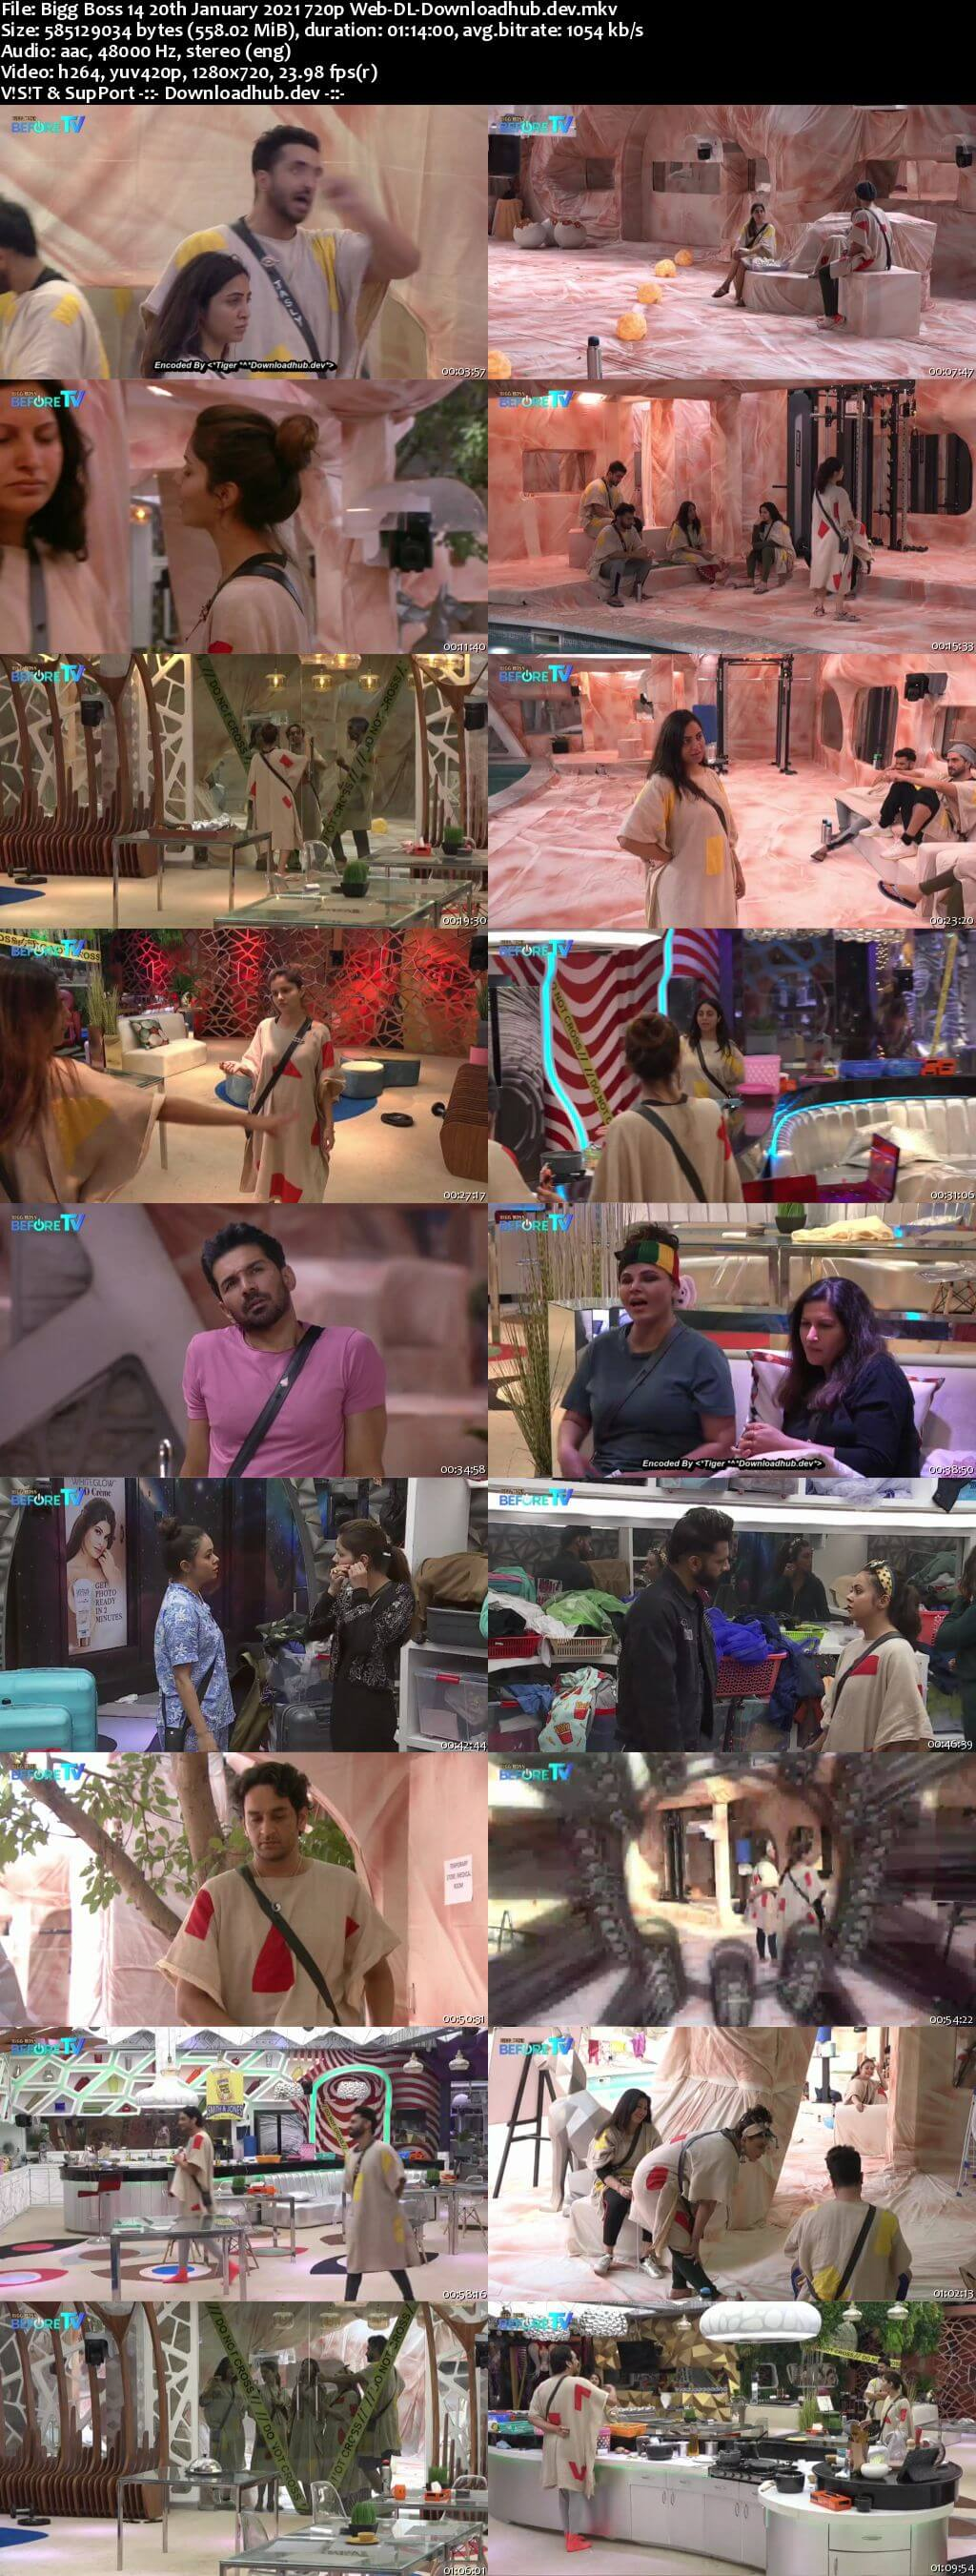 Bigg Boss 14 20th January 2021 Episode 109 720p 480p Web-DL